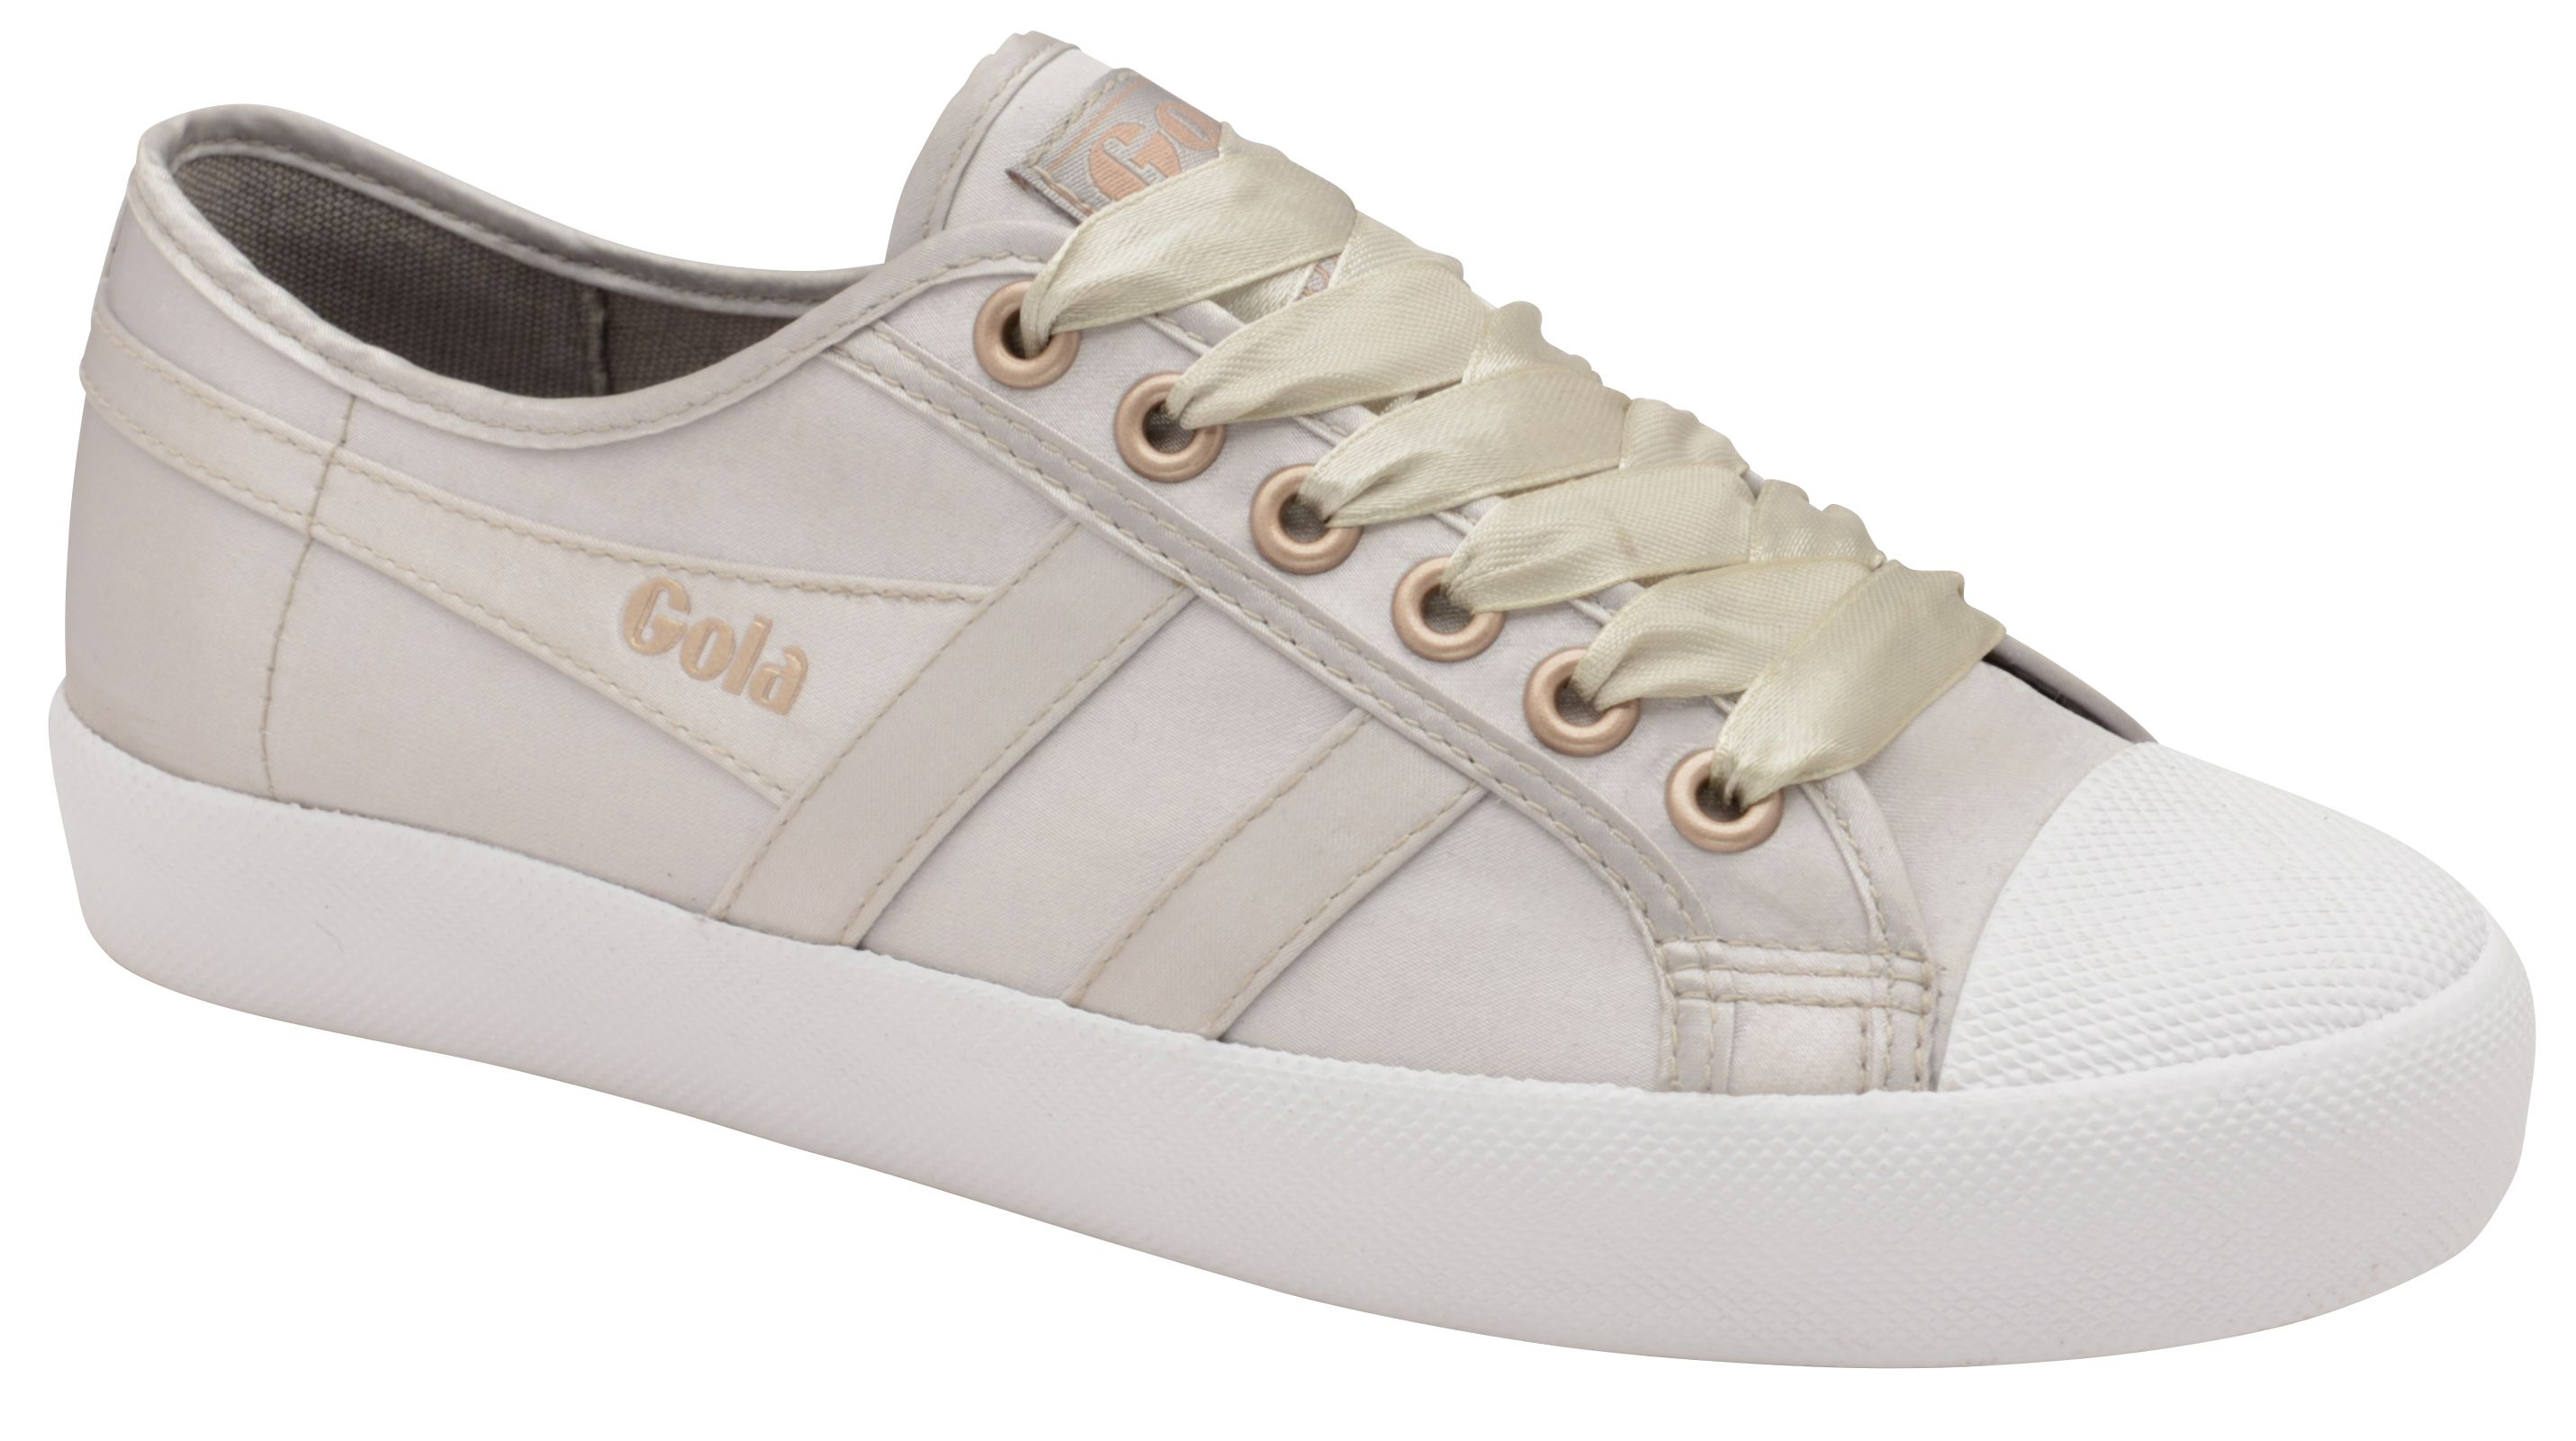 Gola Coaster Satin Lace Up Trainers, Grey